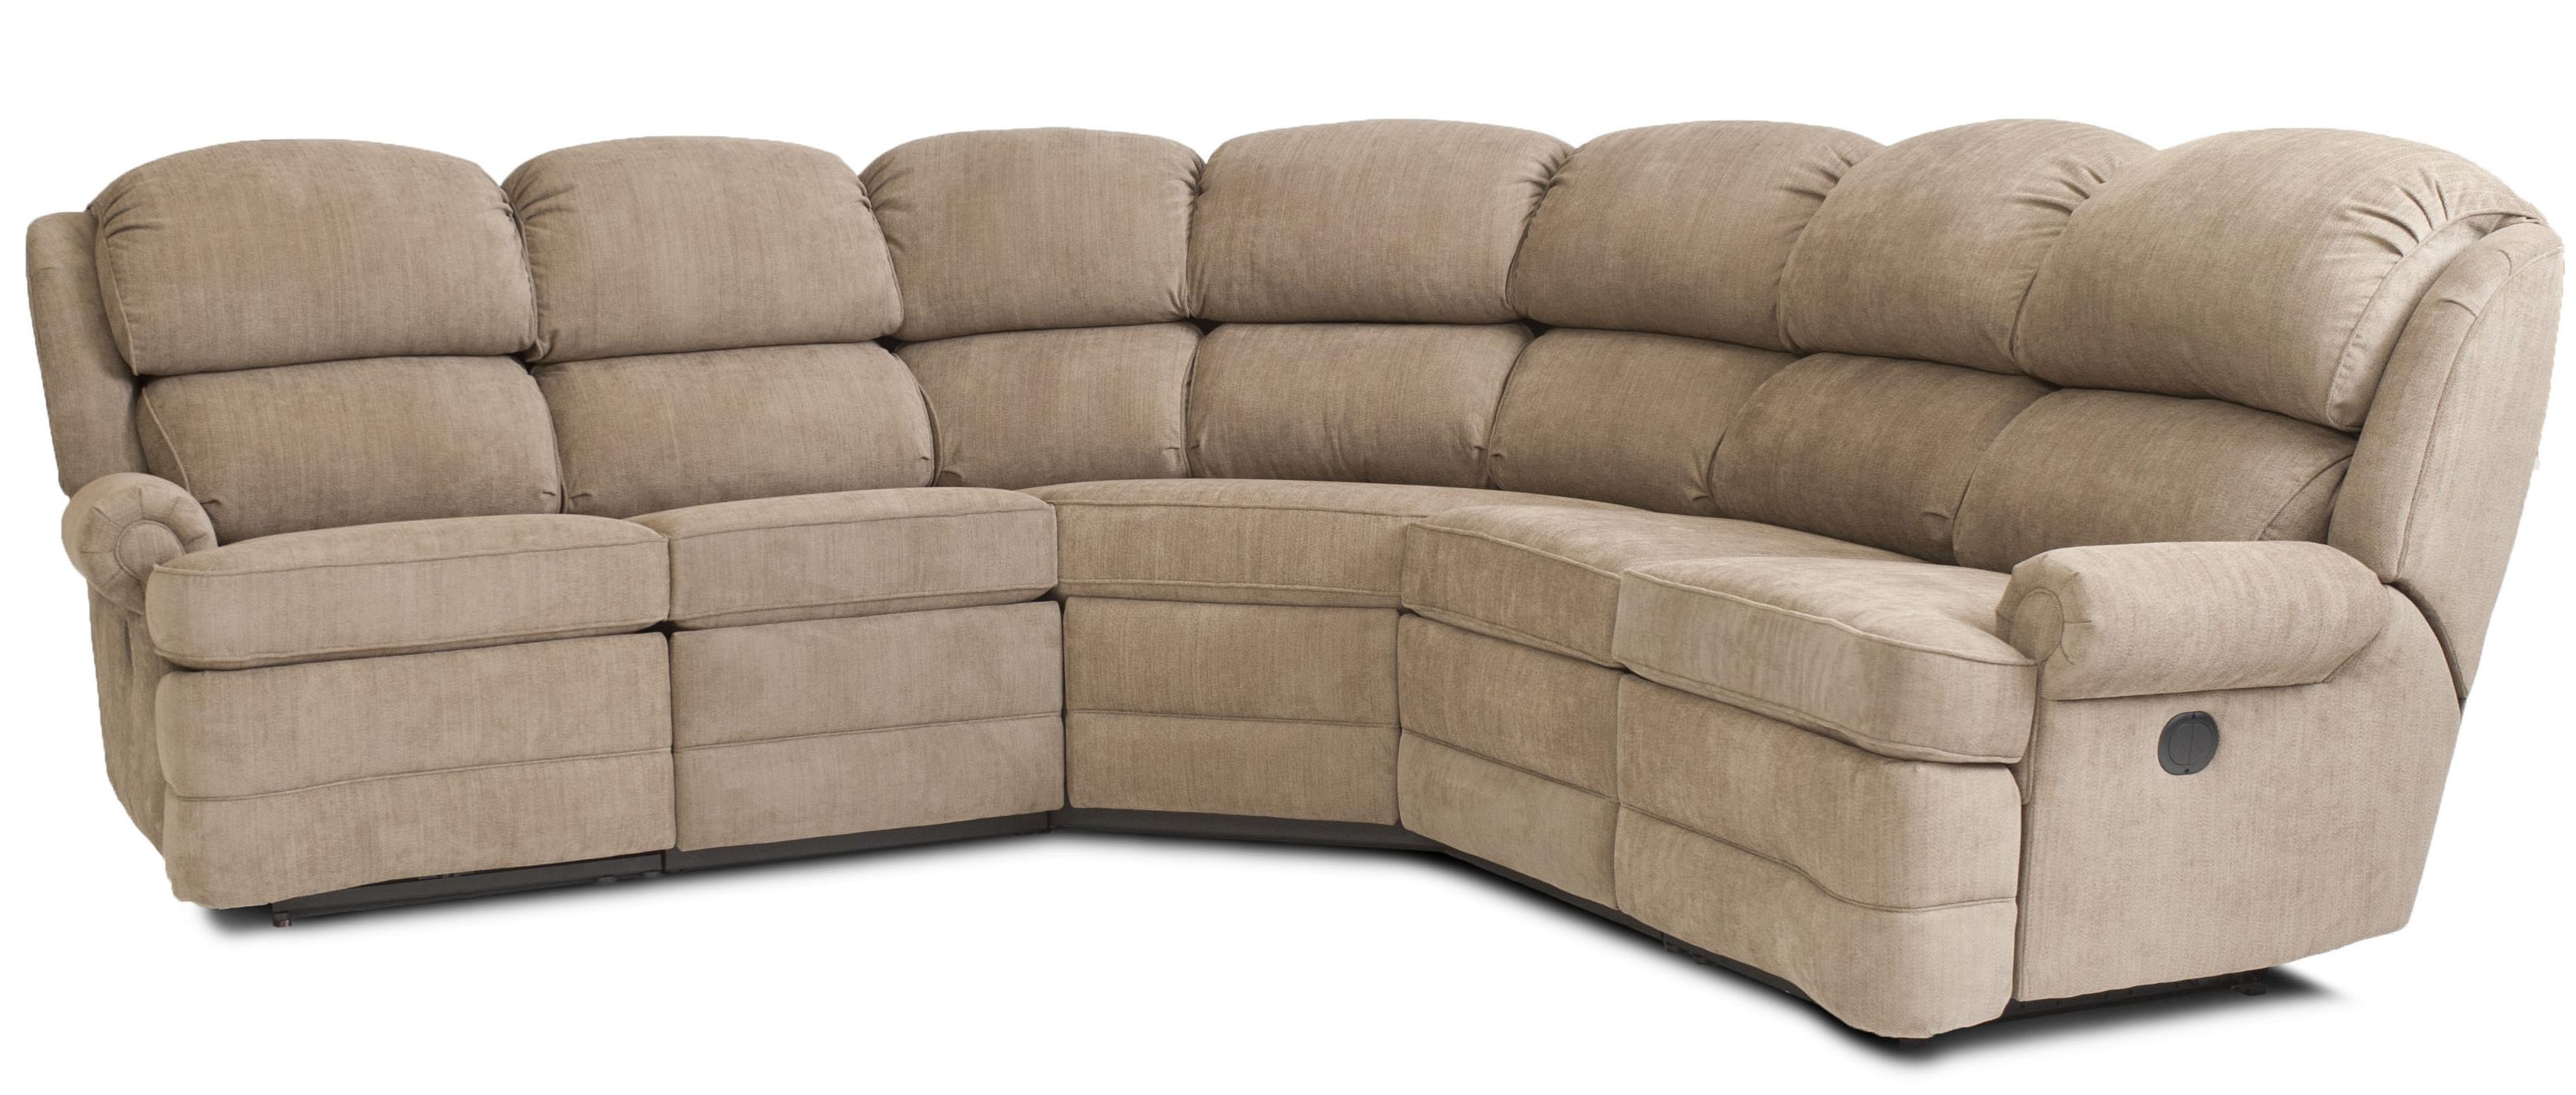 recliners home elites decor of sofa overview an recliner with sofas sectional